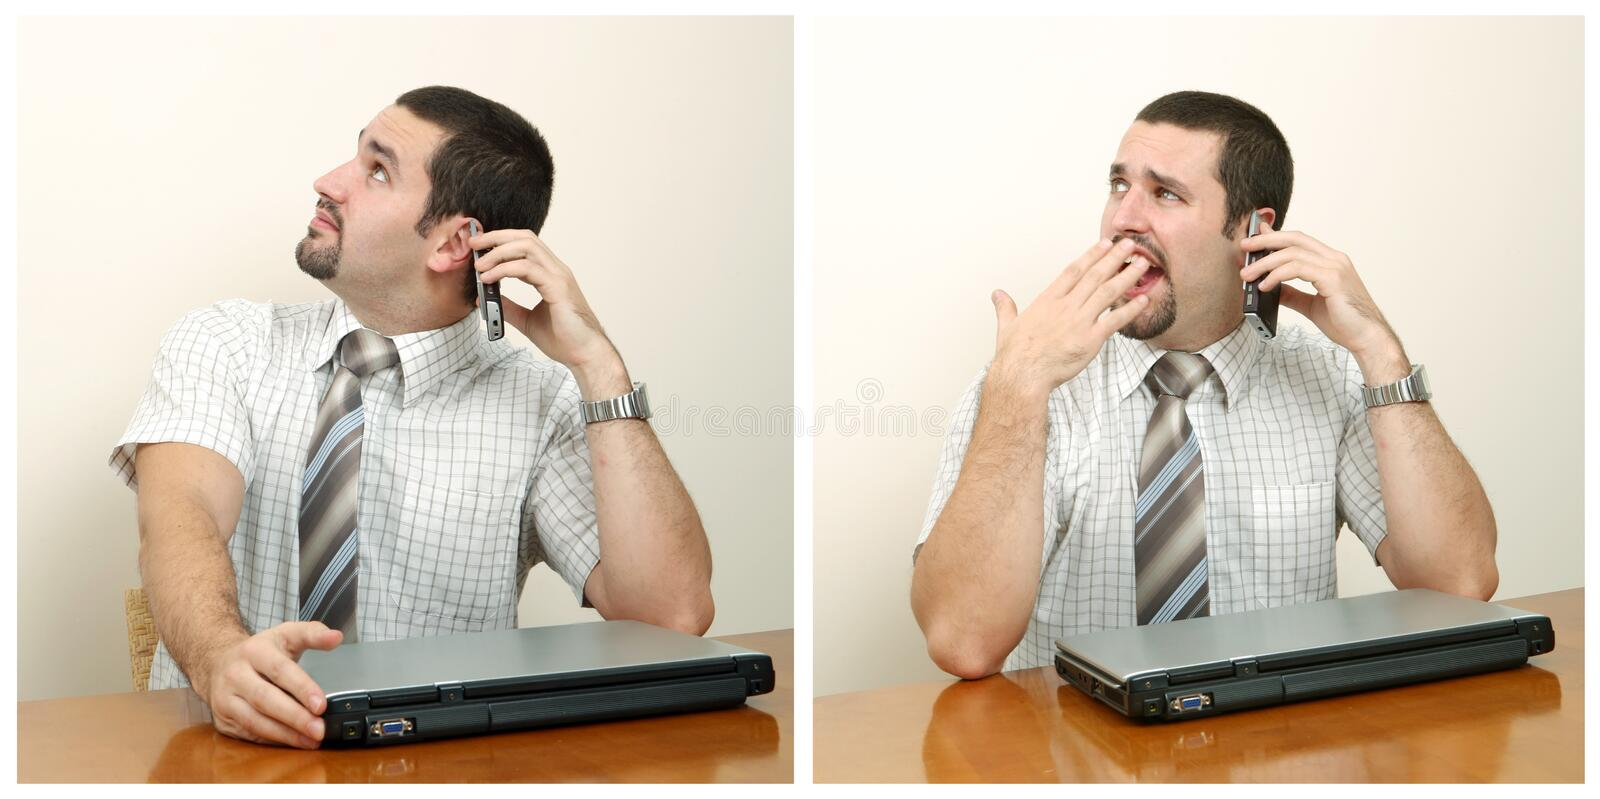 Boring conversation. A tired businessman having a boring conversation on mobile phone royalty free stock photography